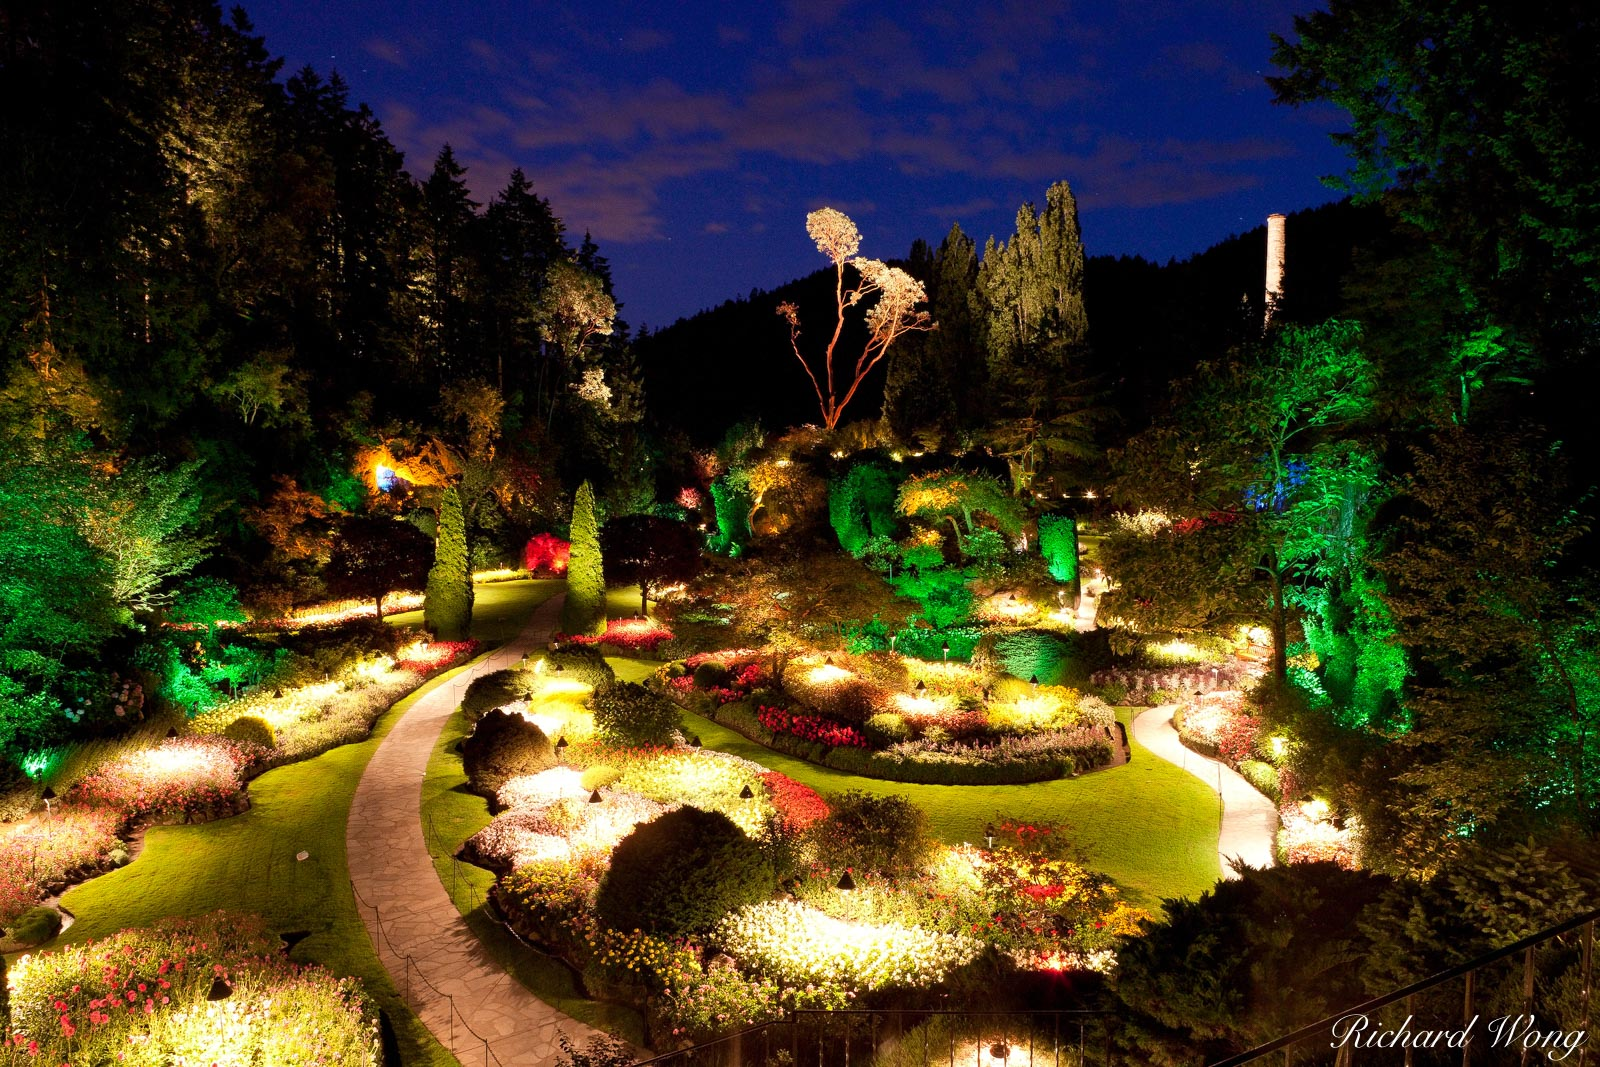 Sunken Garden Overlook Night View at the Butchart Gardens, Brentwood Bay, Vancouver Island, B.C., photo, photo